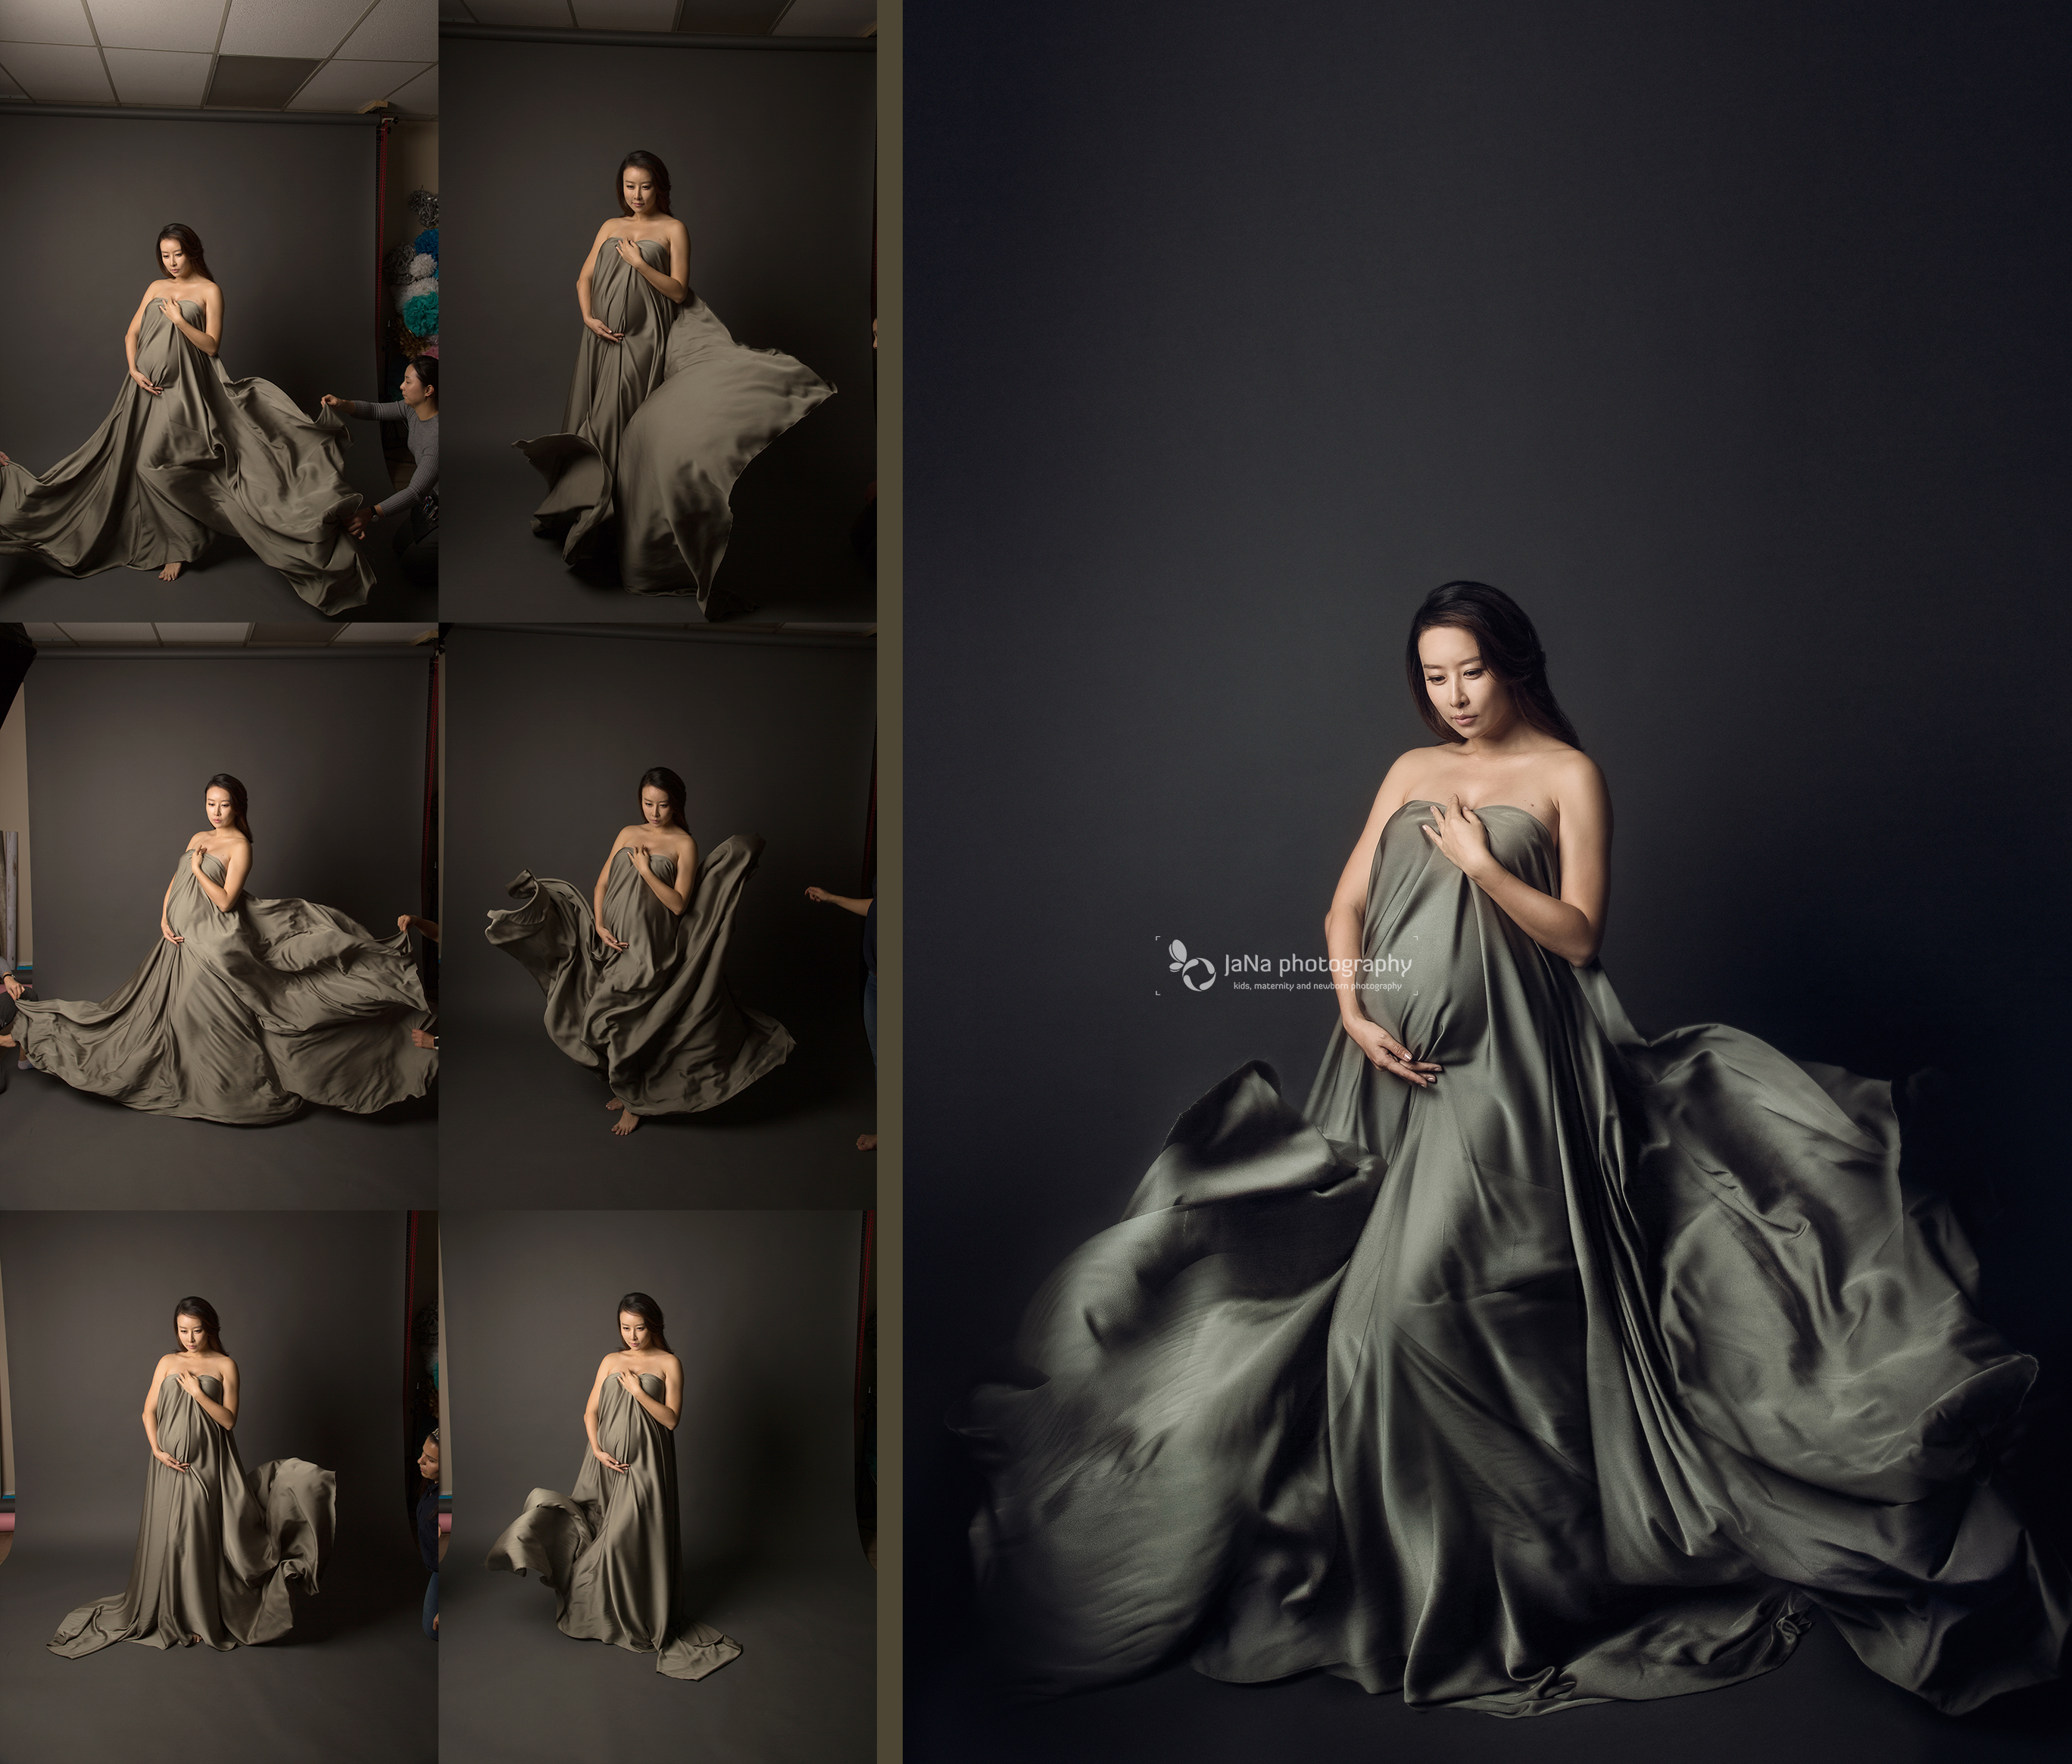 Maternity photography fabric blowing backstage